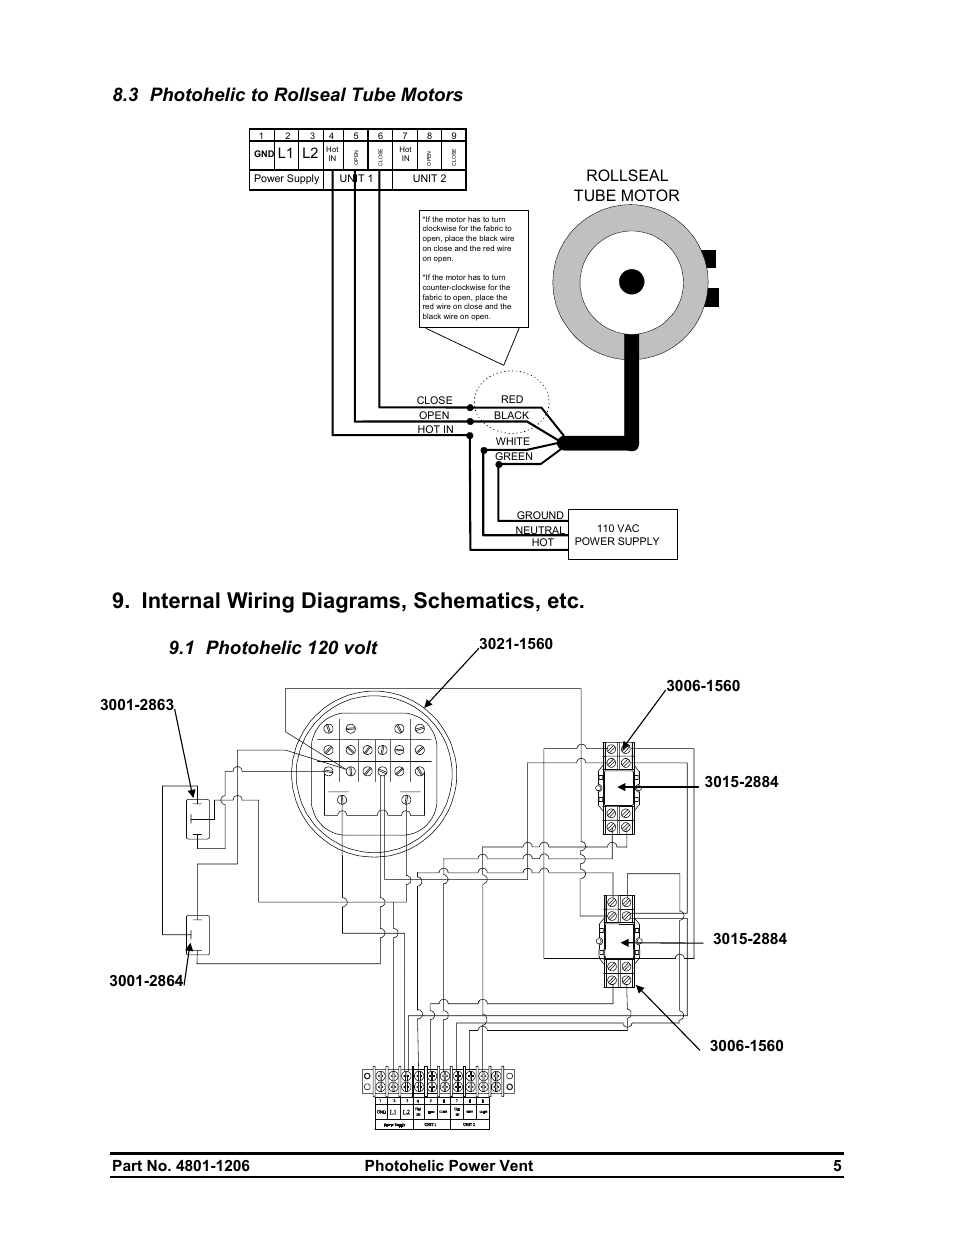 hight resolution of internal wiring diagrams schematics etc 3 photohelic to rollseal tube motors 1